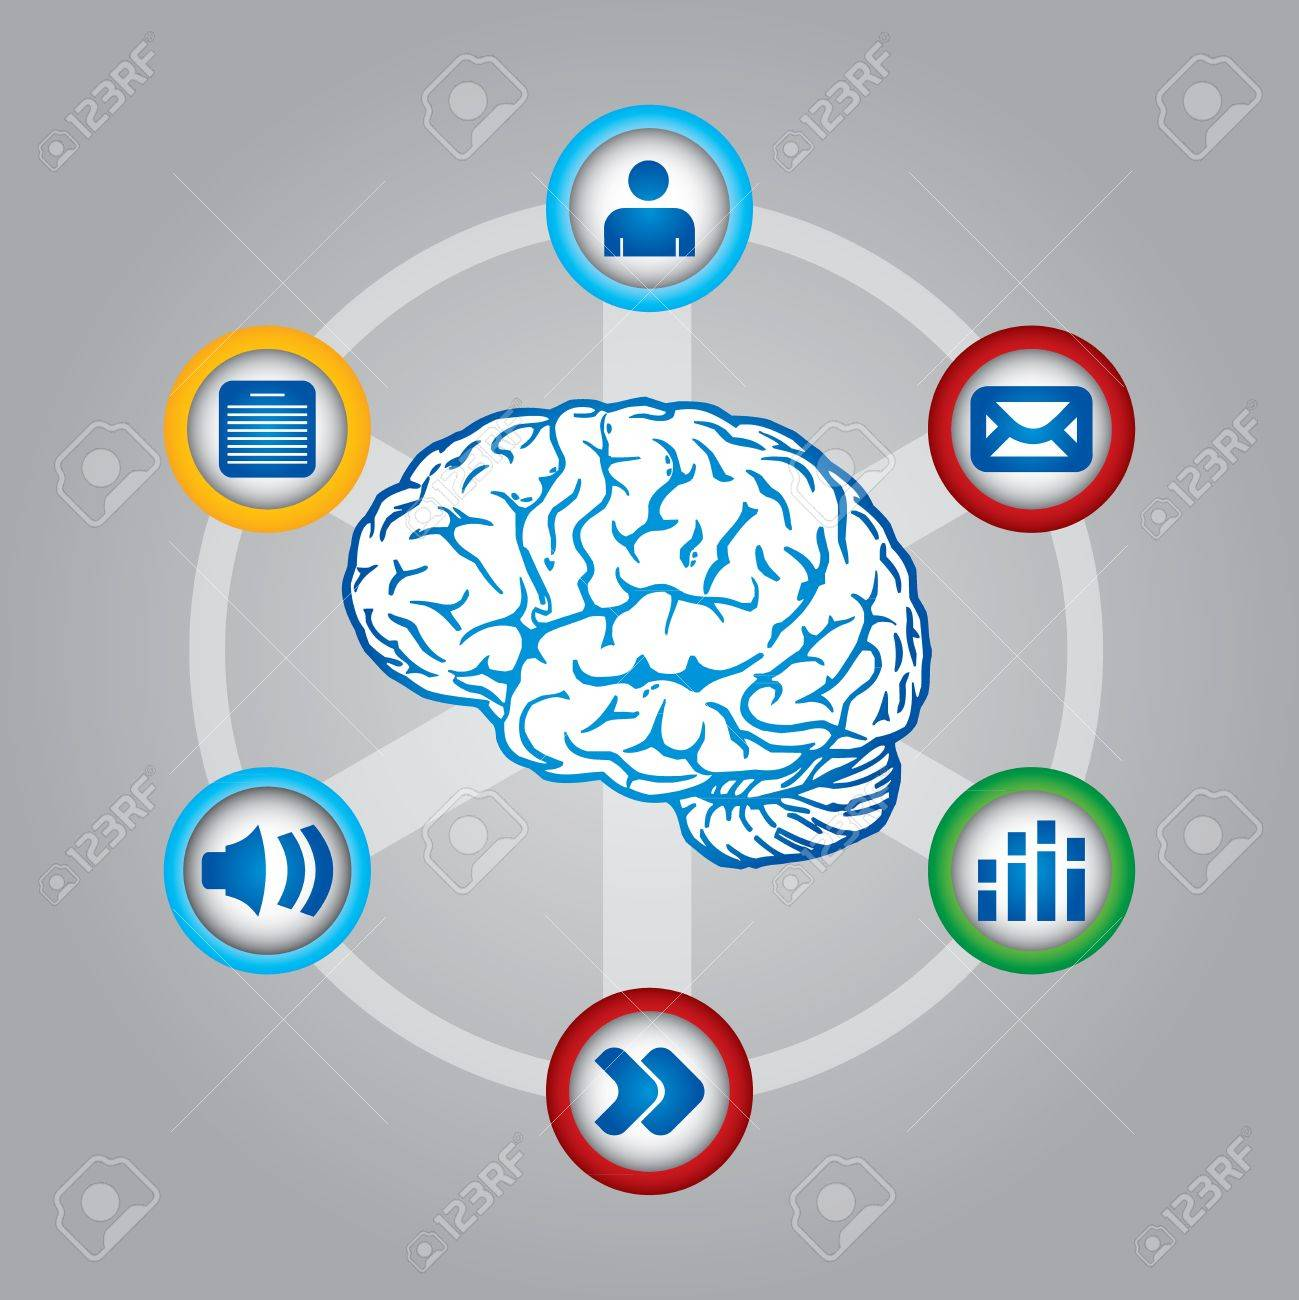 Multimedia thinking - communication concept with brain and web icons Stock Vector - 15406775